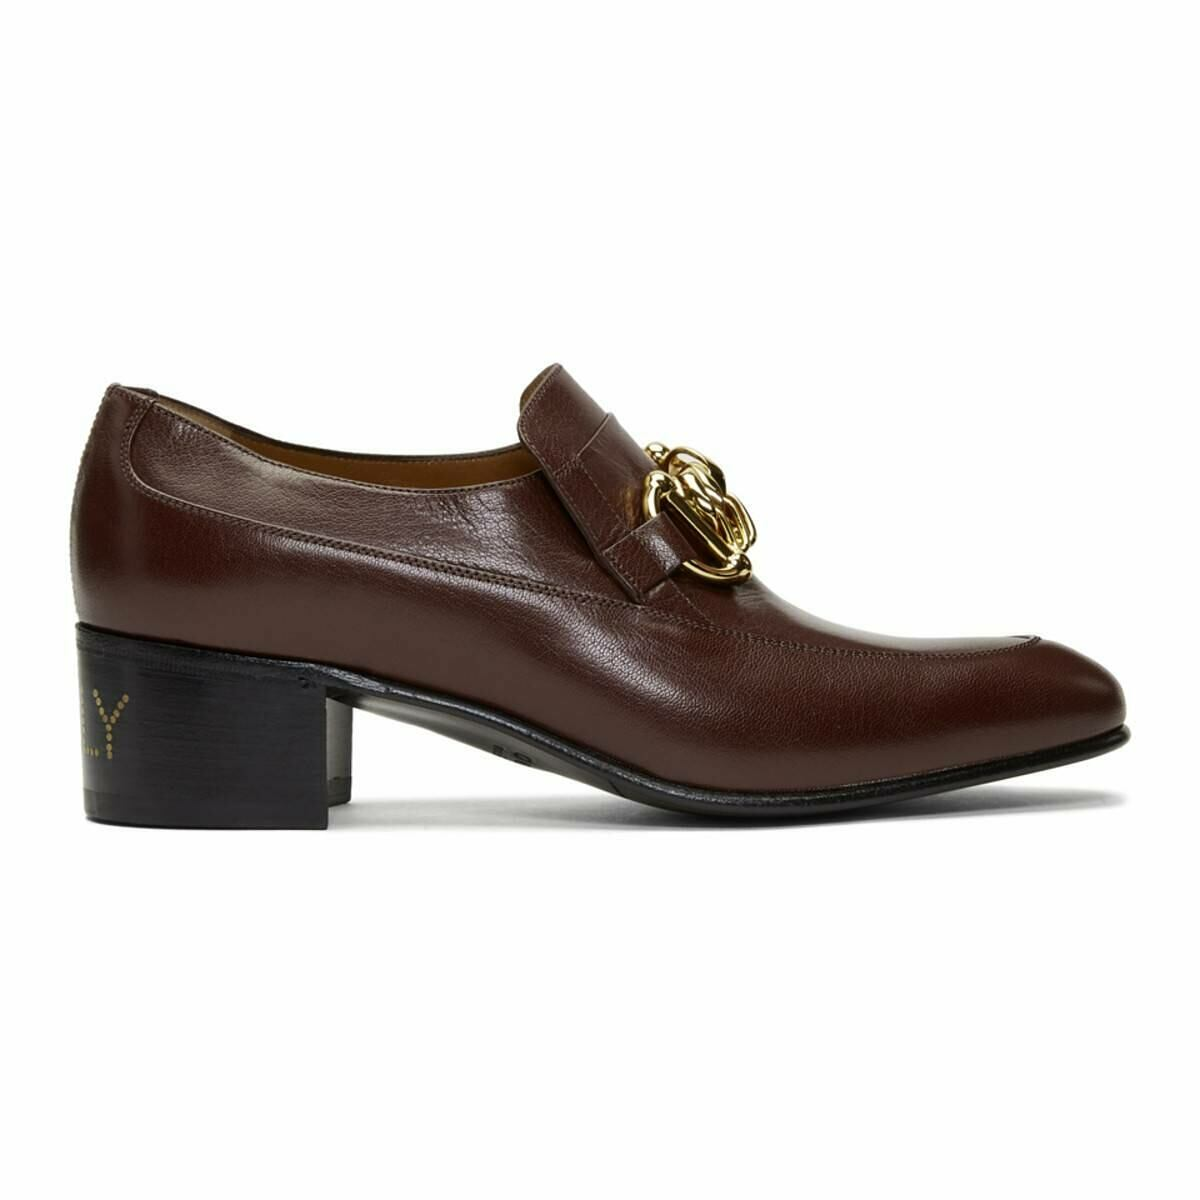 Gucci Burgundy Leather Horsebit Chain Loafers Ssense USA MEN Men SHOES Mens LOAFERS